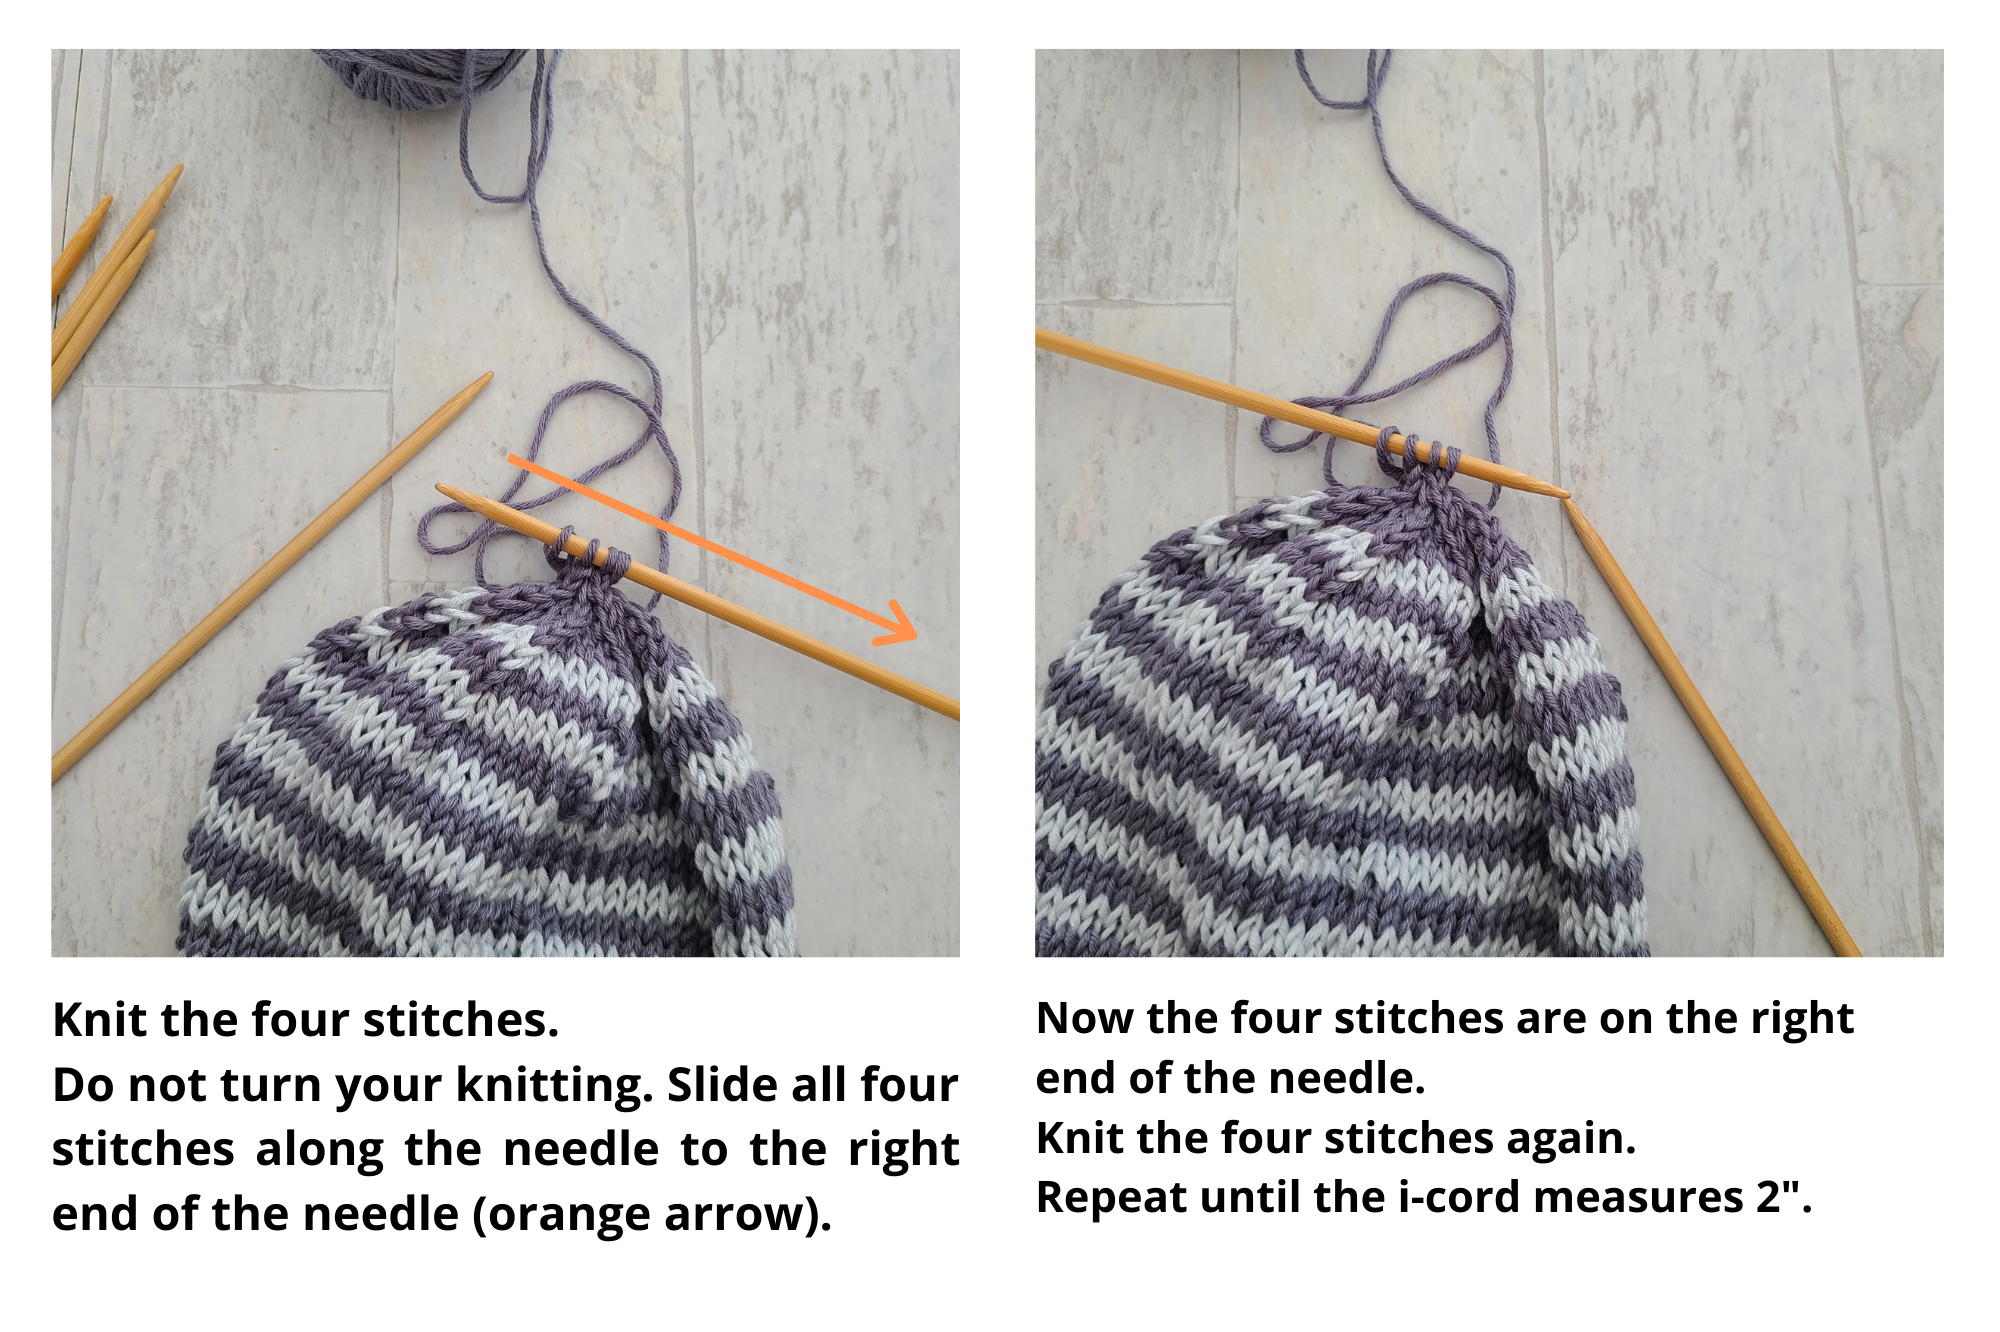 "Two images showing the i-cord being knit on the crown of the hat. The image on the right has an orange arrow pointing from the left edge to right of one double-pointed needle, instructing the knitter to knit the four stitches, do not turn work, and slide all four stitches along the needle from to the right end. The second image shows the stitches on the right edge of the needle, now positioned to the left of the second needle and includes text instructing the knitter to knit the four stitches again and to repeat the sliding and knitting process until the i-cord measures 2""."